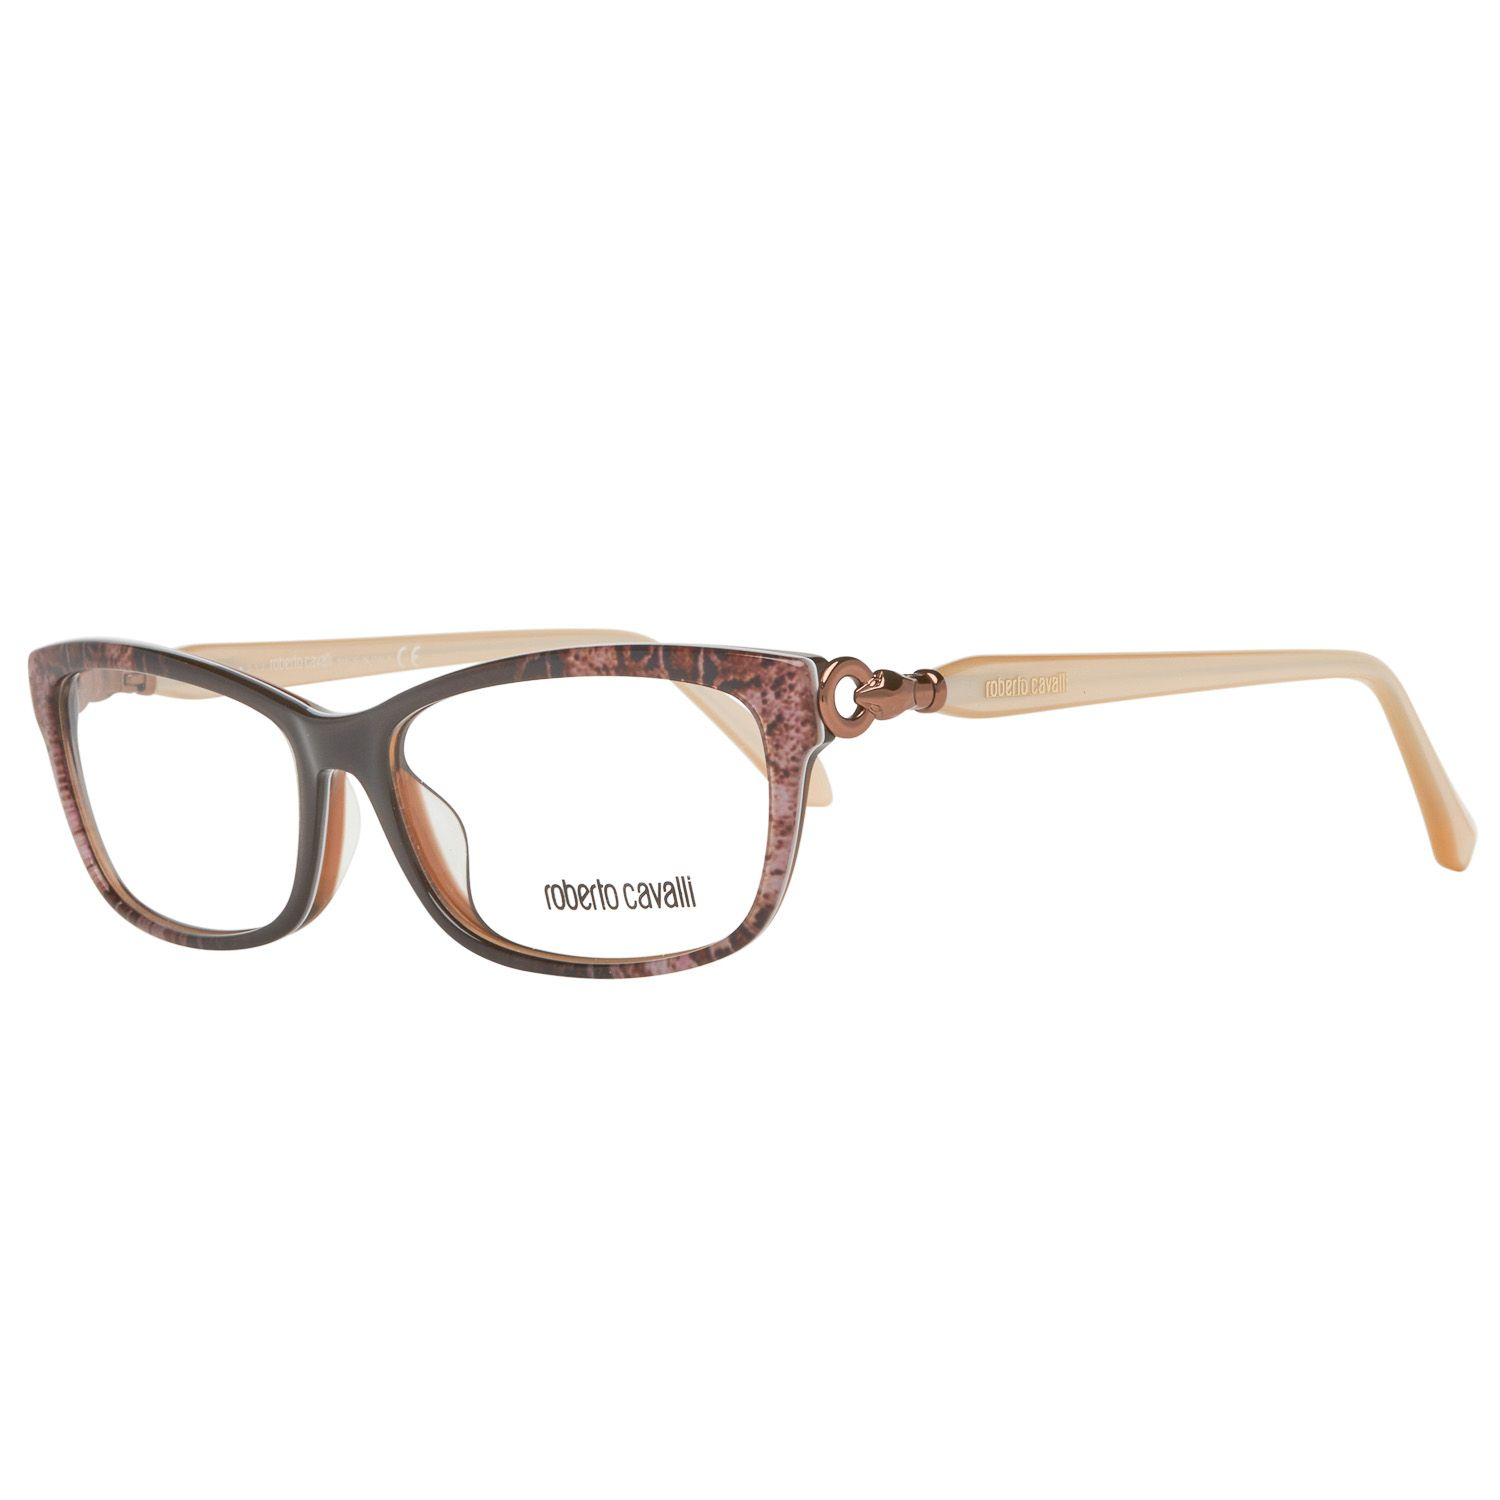 Roberto Cavalli Optical Frame RC5012 050 54 Women Brown